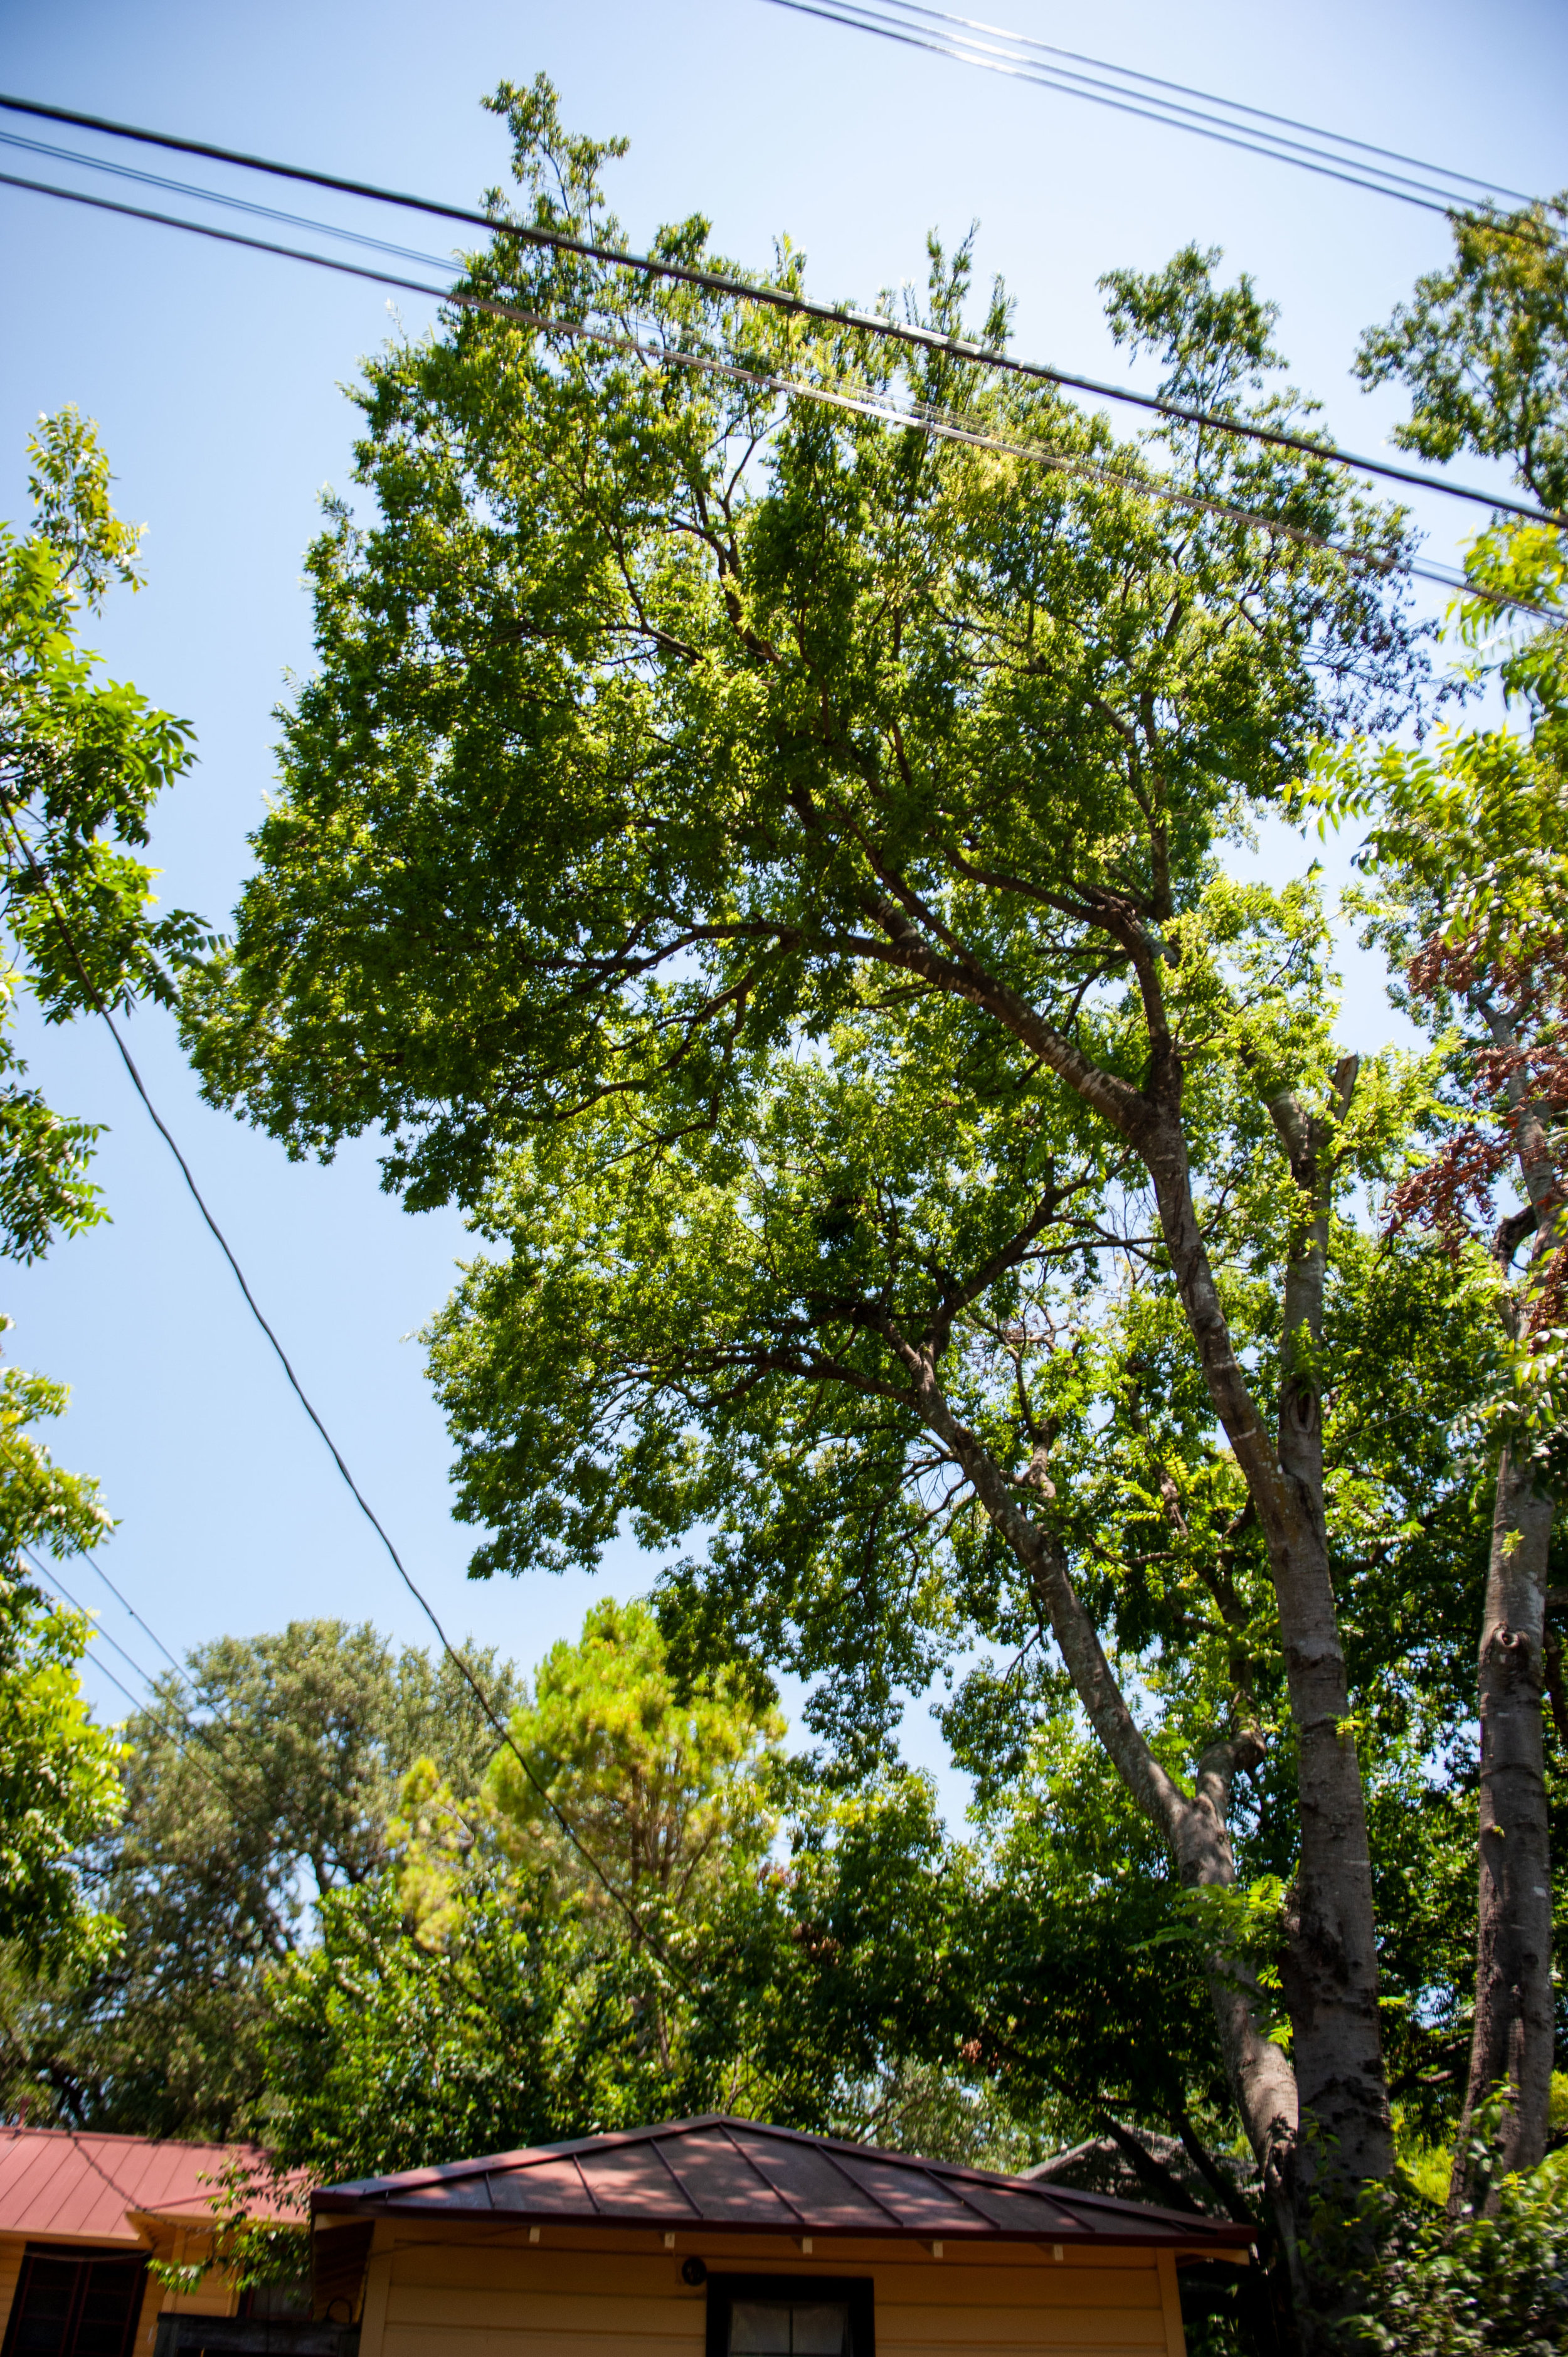 View: Hackberry tree | From: Back driveway